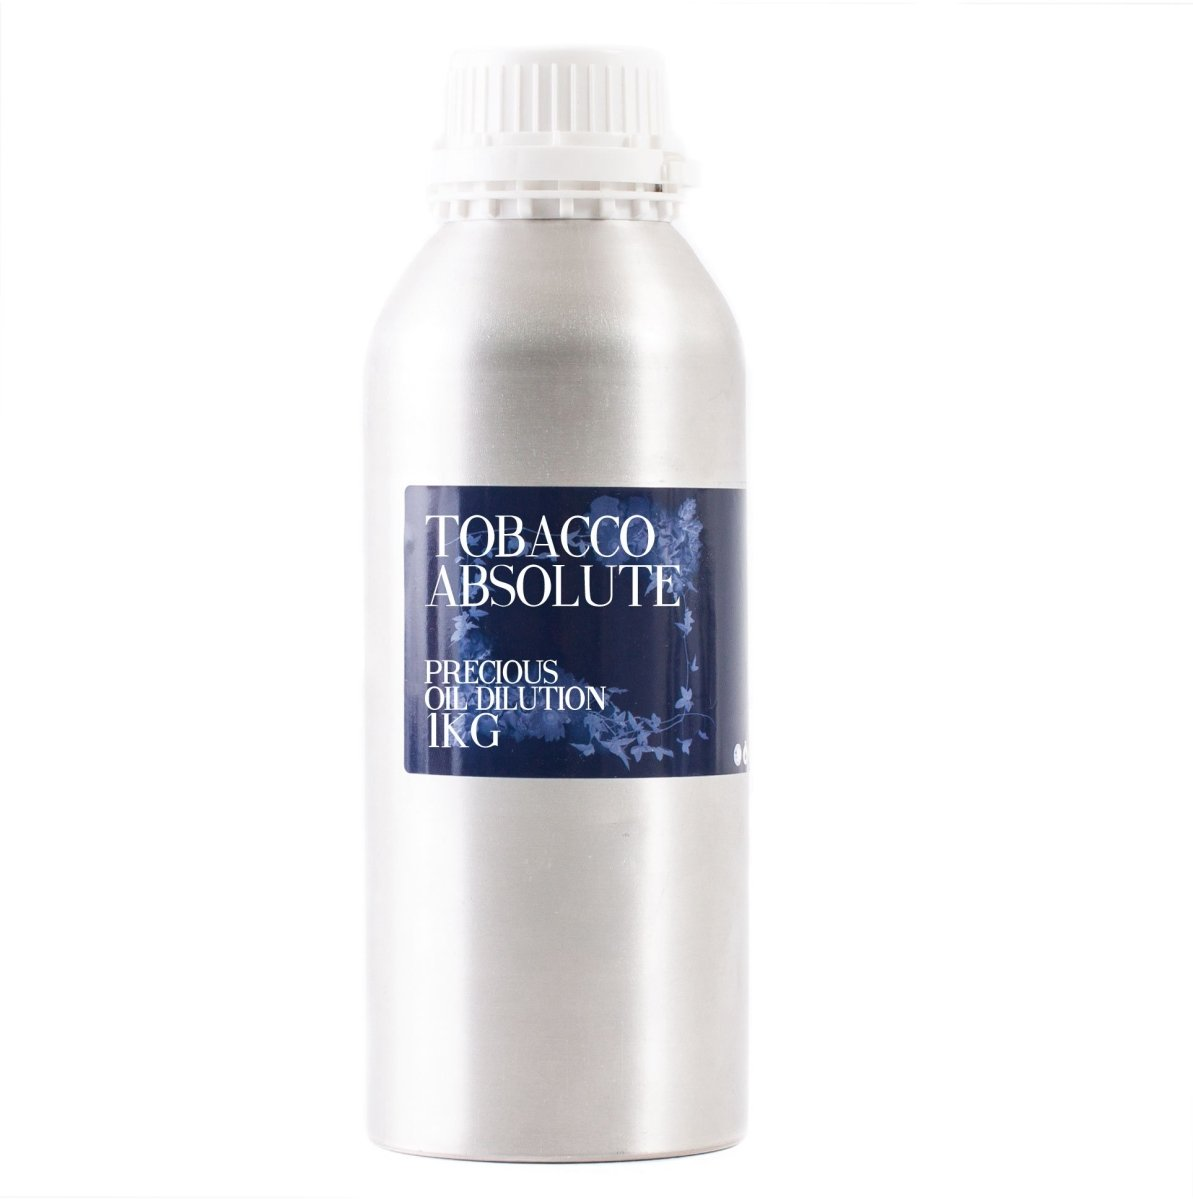 Tobacco Absolute Oil Dilution - Mystic Moments UK